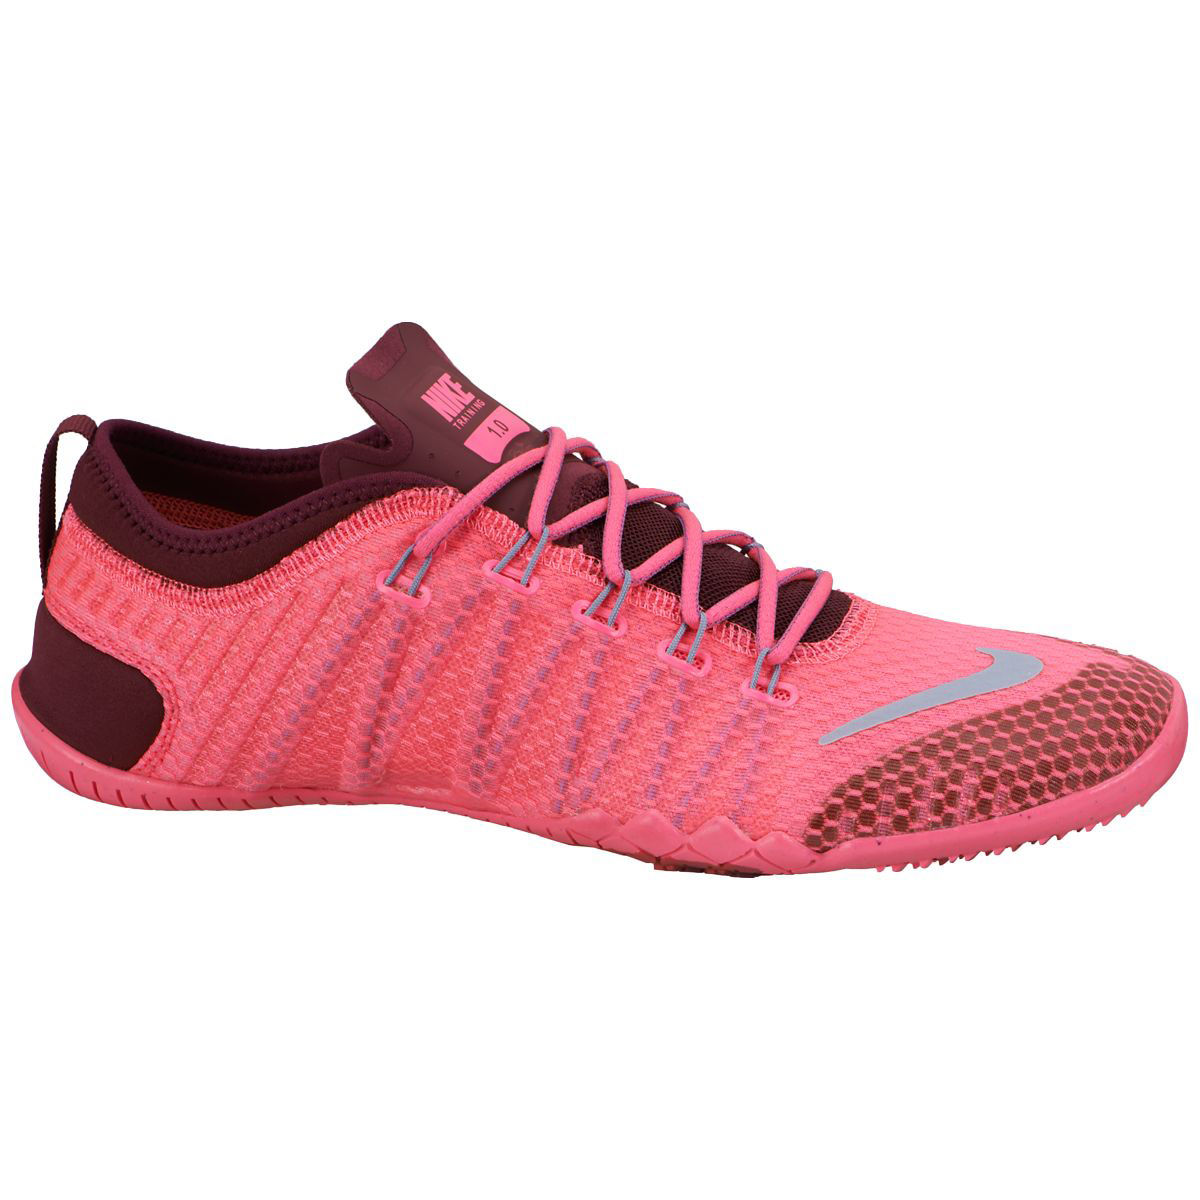 e951fe18e69e ... Nike Womens Free 1.0 Cross Bionic Shoes - FA14 ...